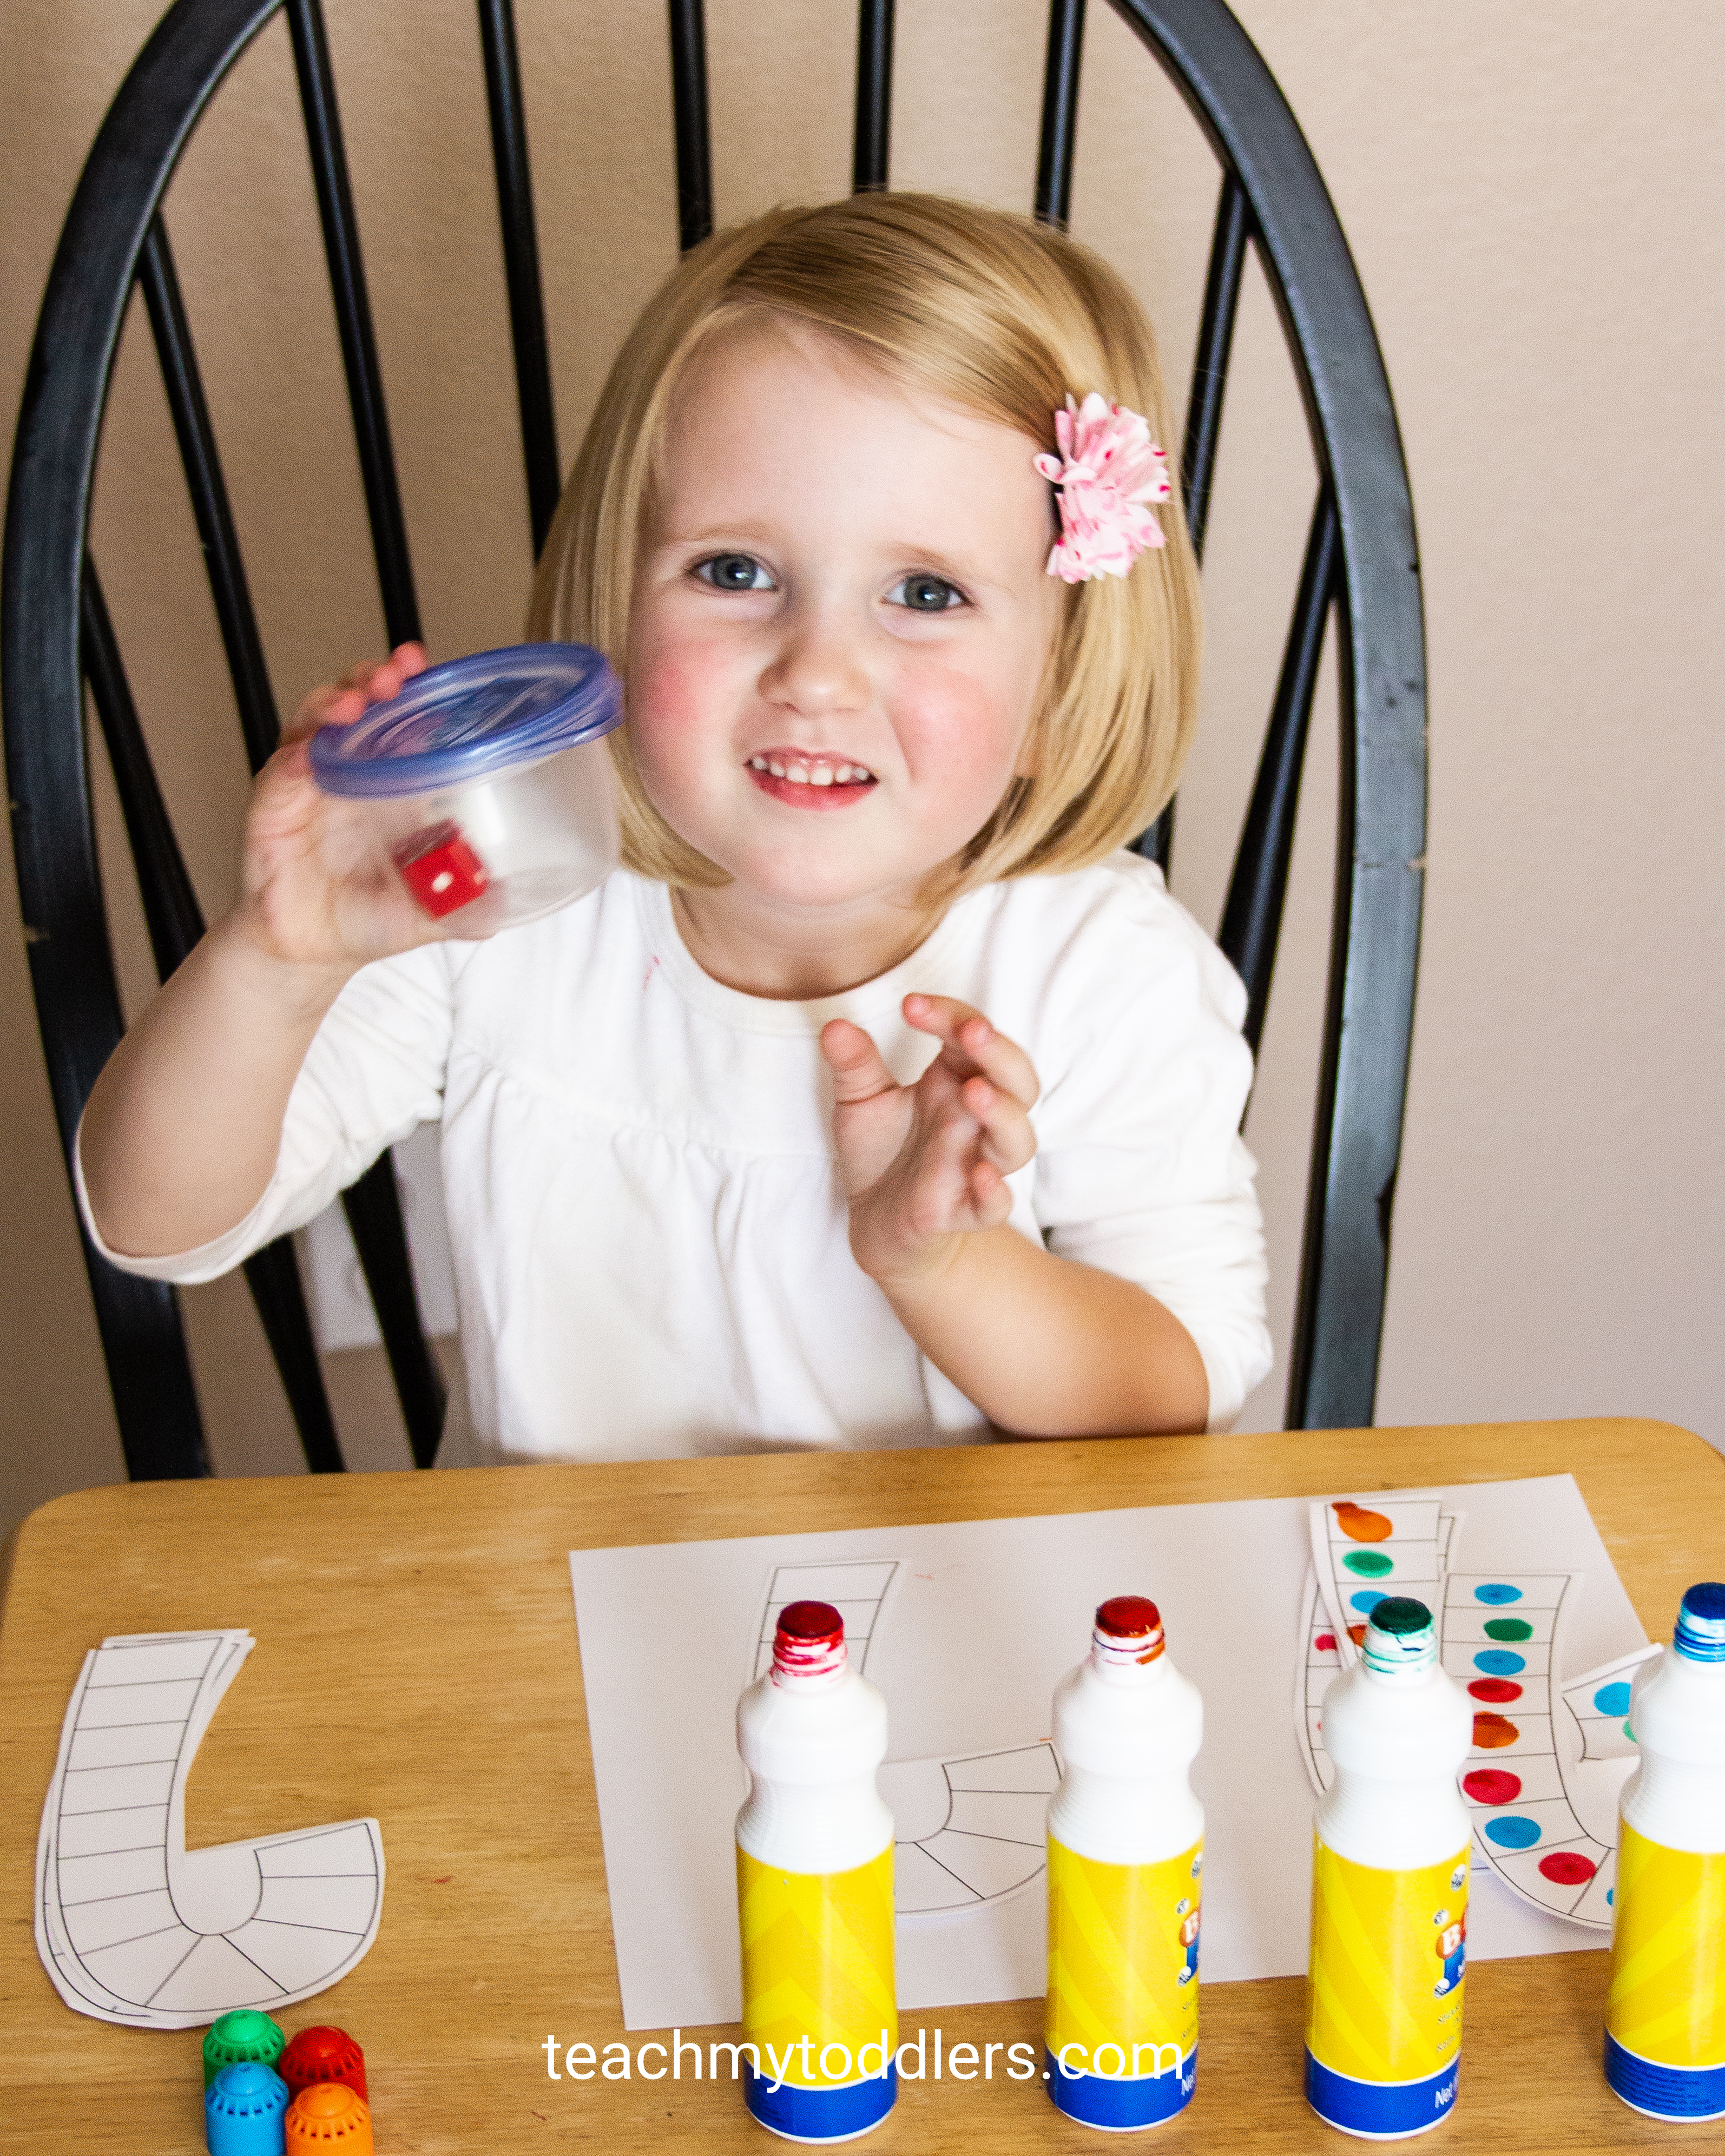 Use this fun activity called candy cane math game to teach toddlers numbers